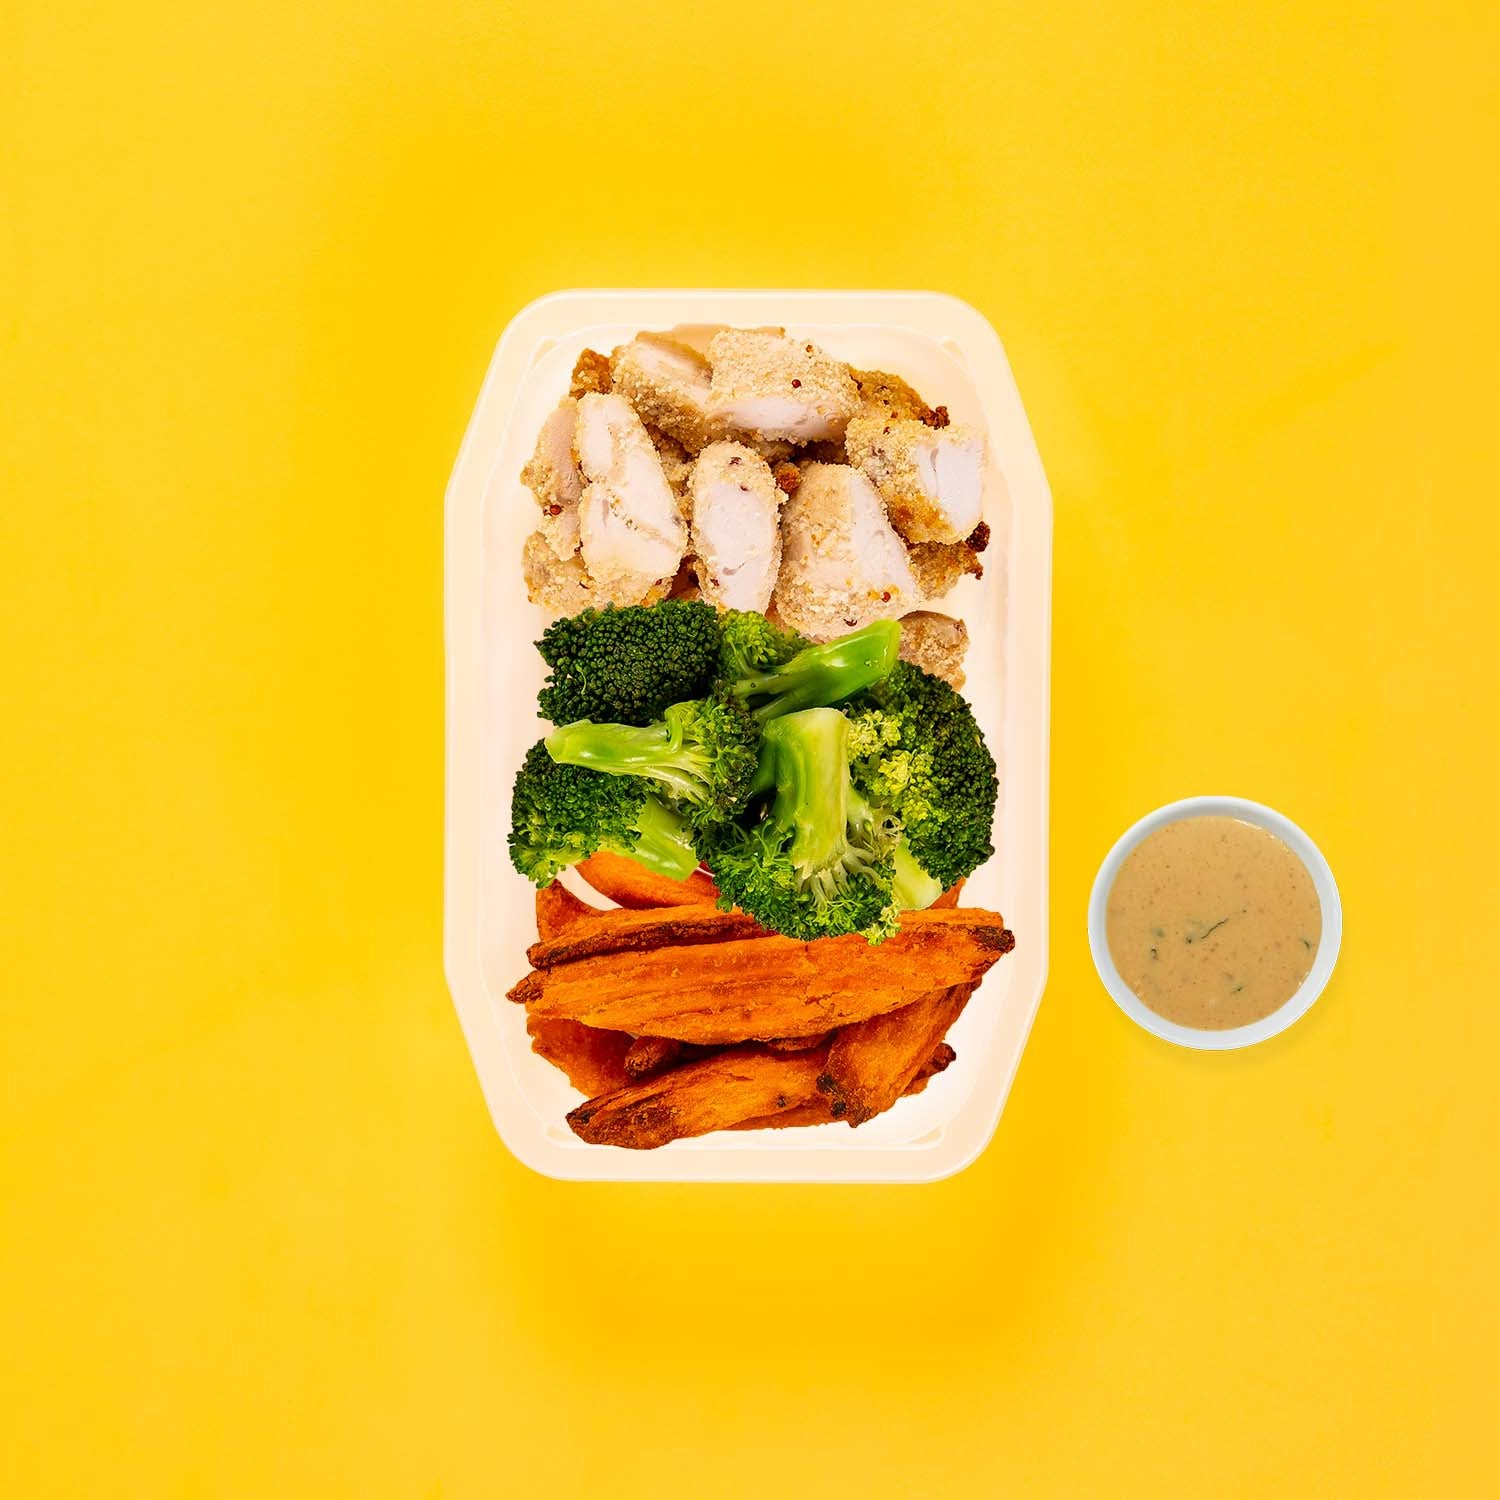 50g Quinoa Chicken Tenders 200g Broccoli 50g Sweet Potato Wedges Satay Sauce